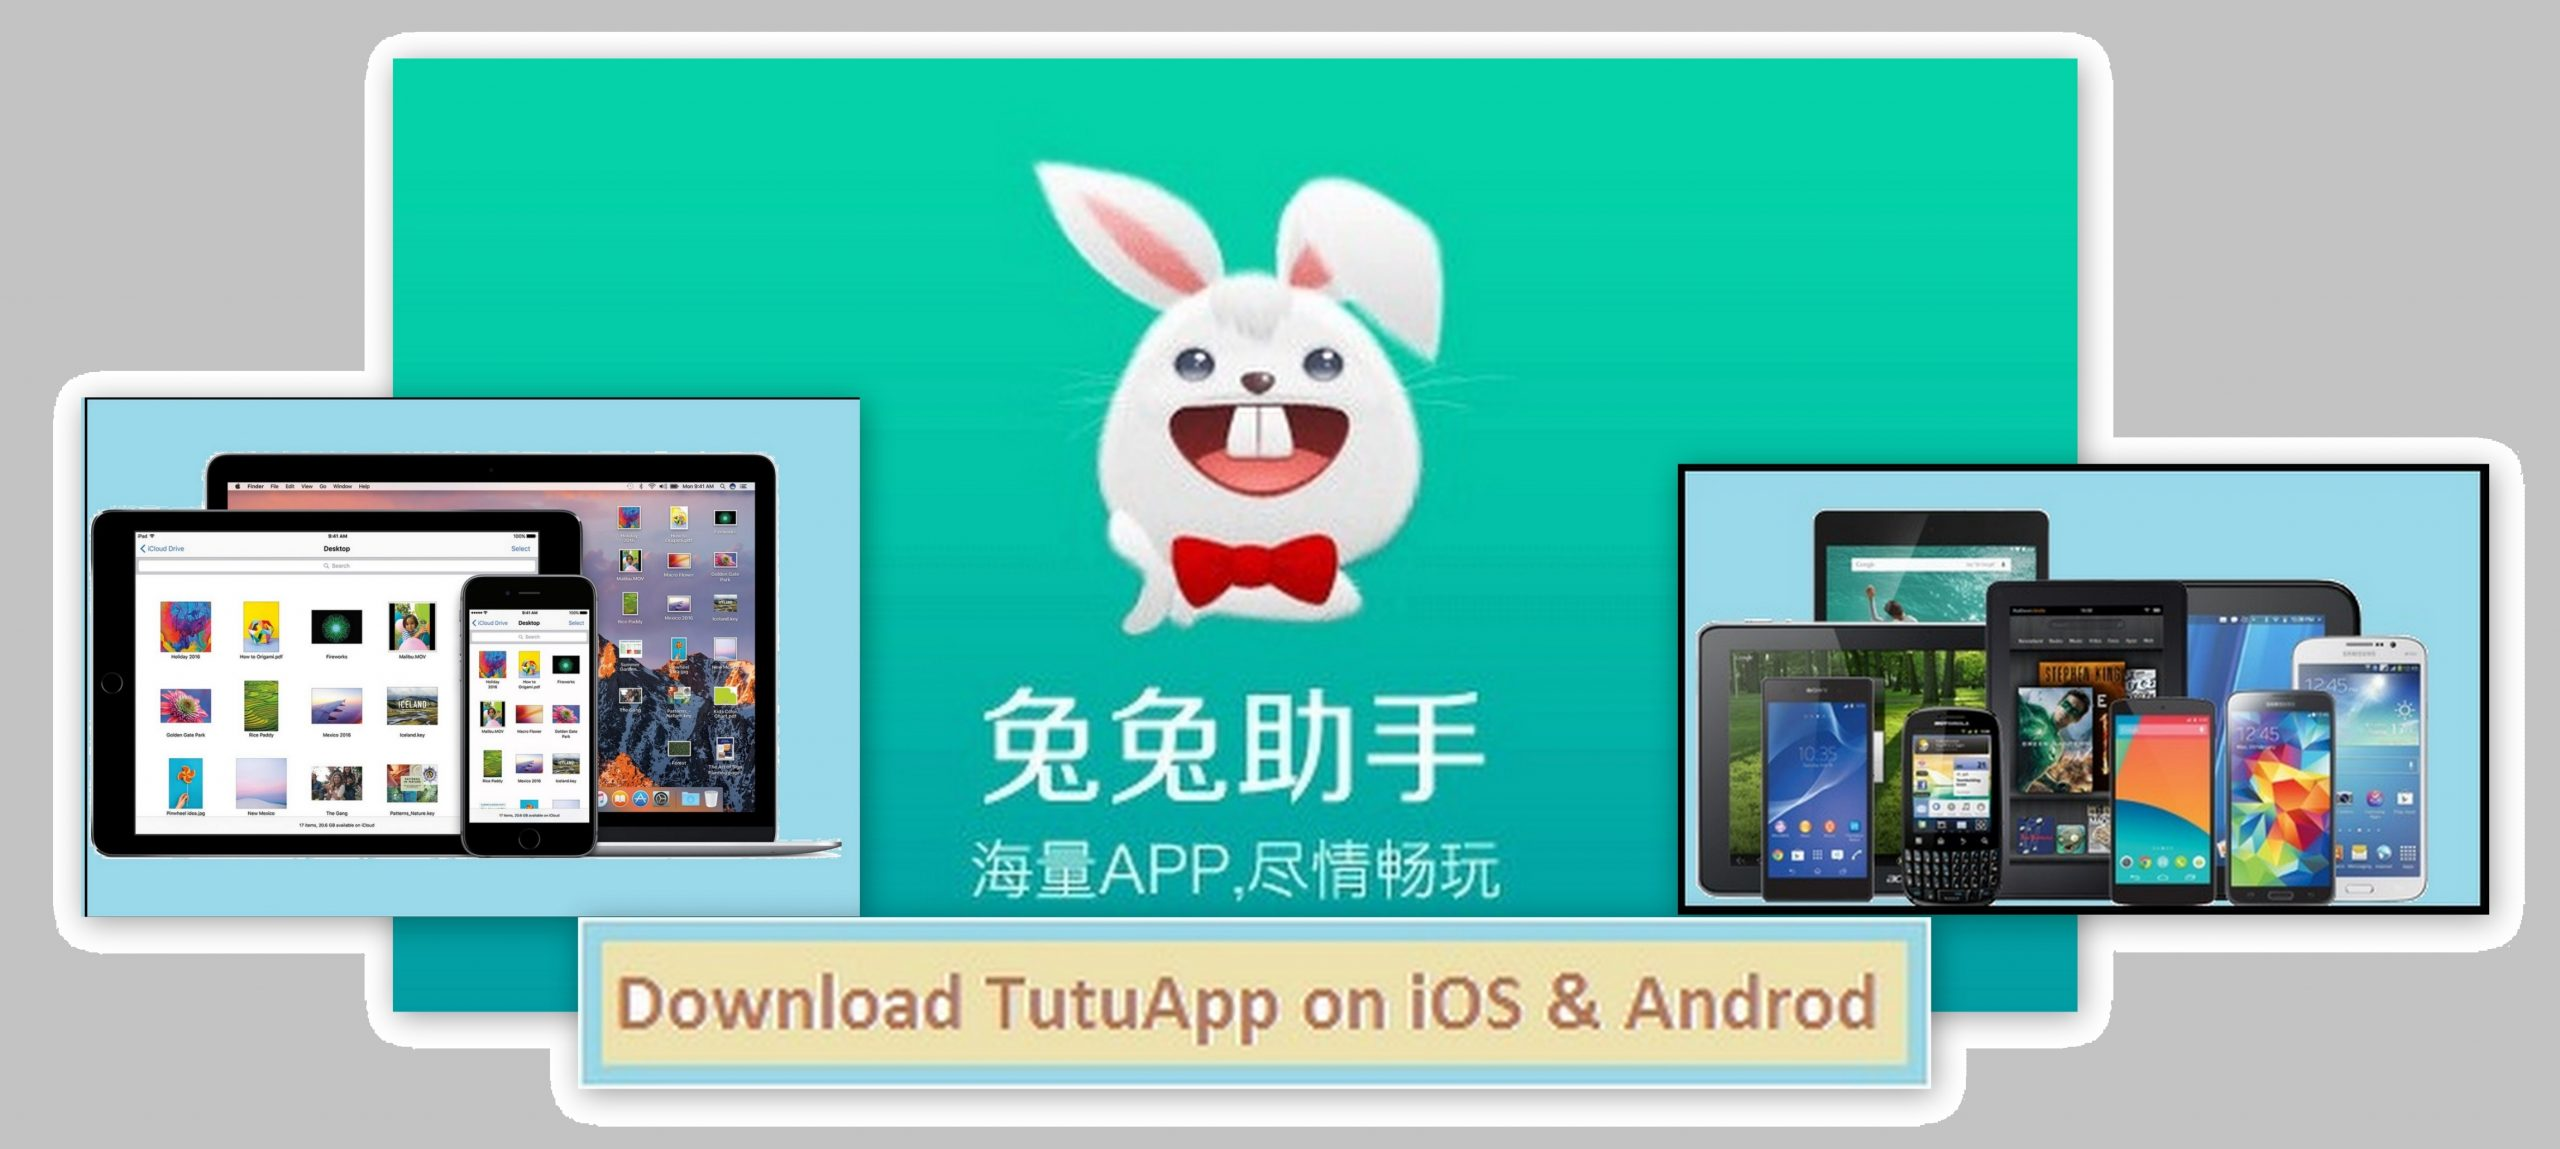 tutuapp free download iphone